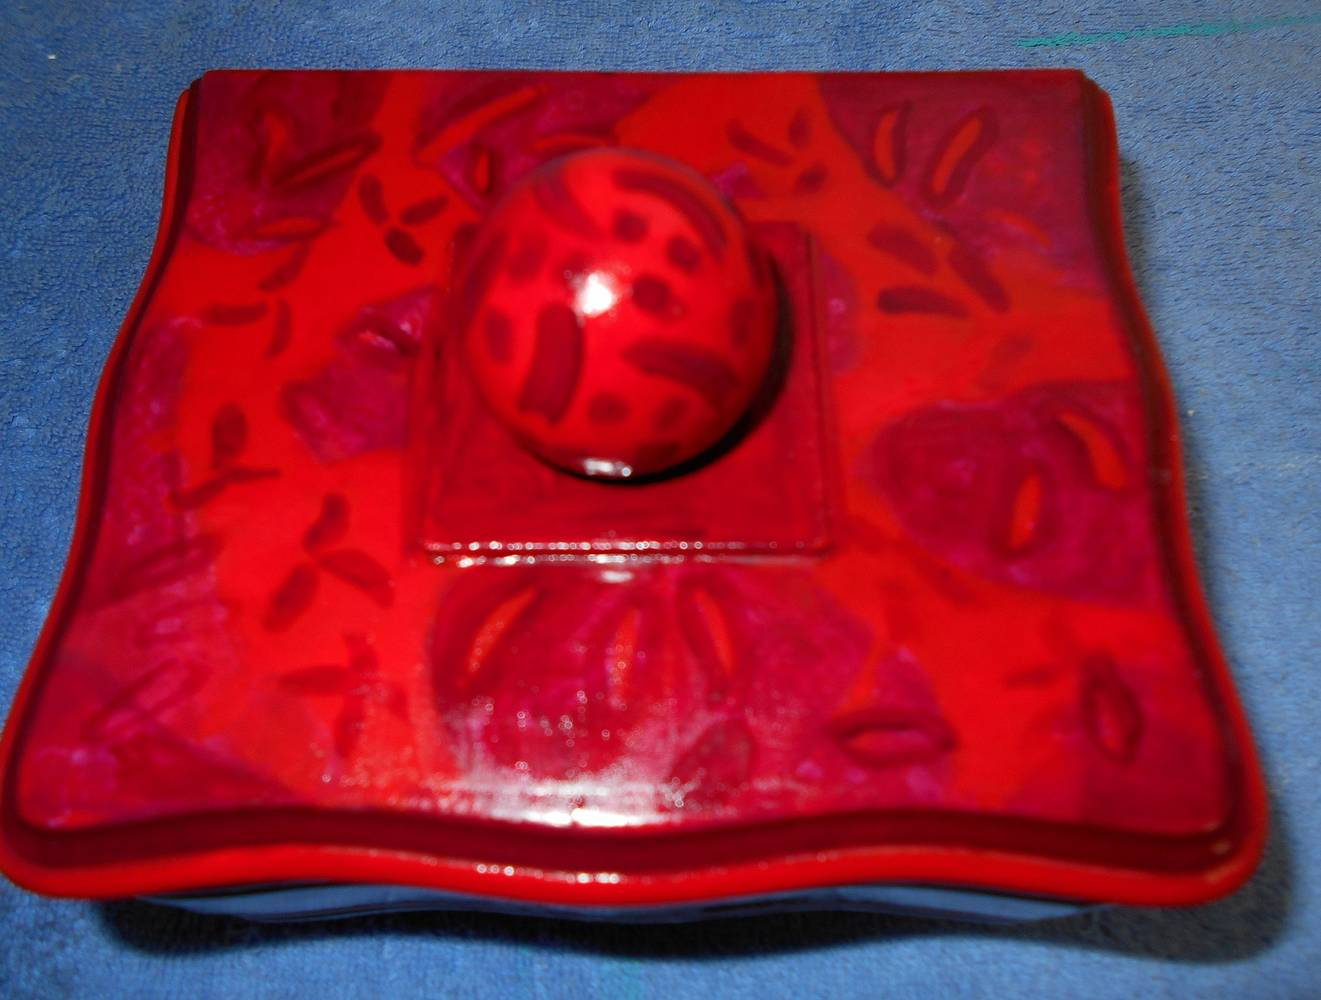 Acrylic painting TOP OF RED BOX by Georgette  Jones